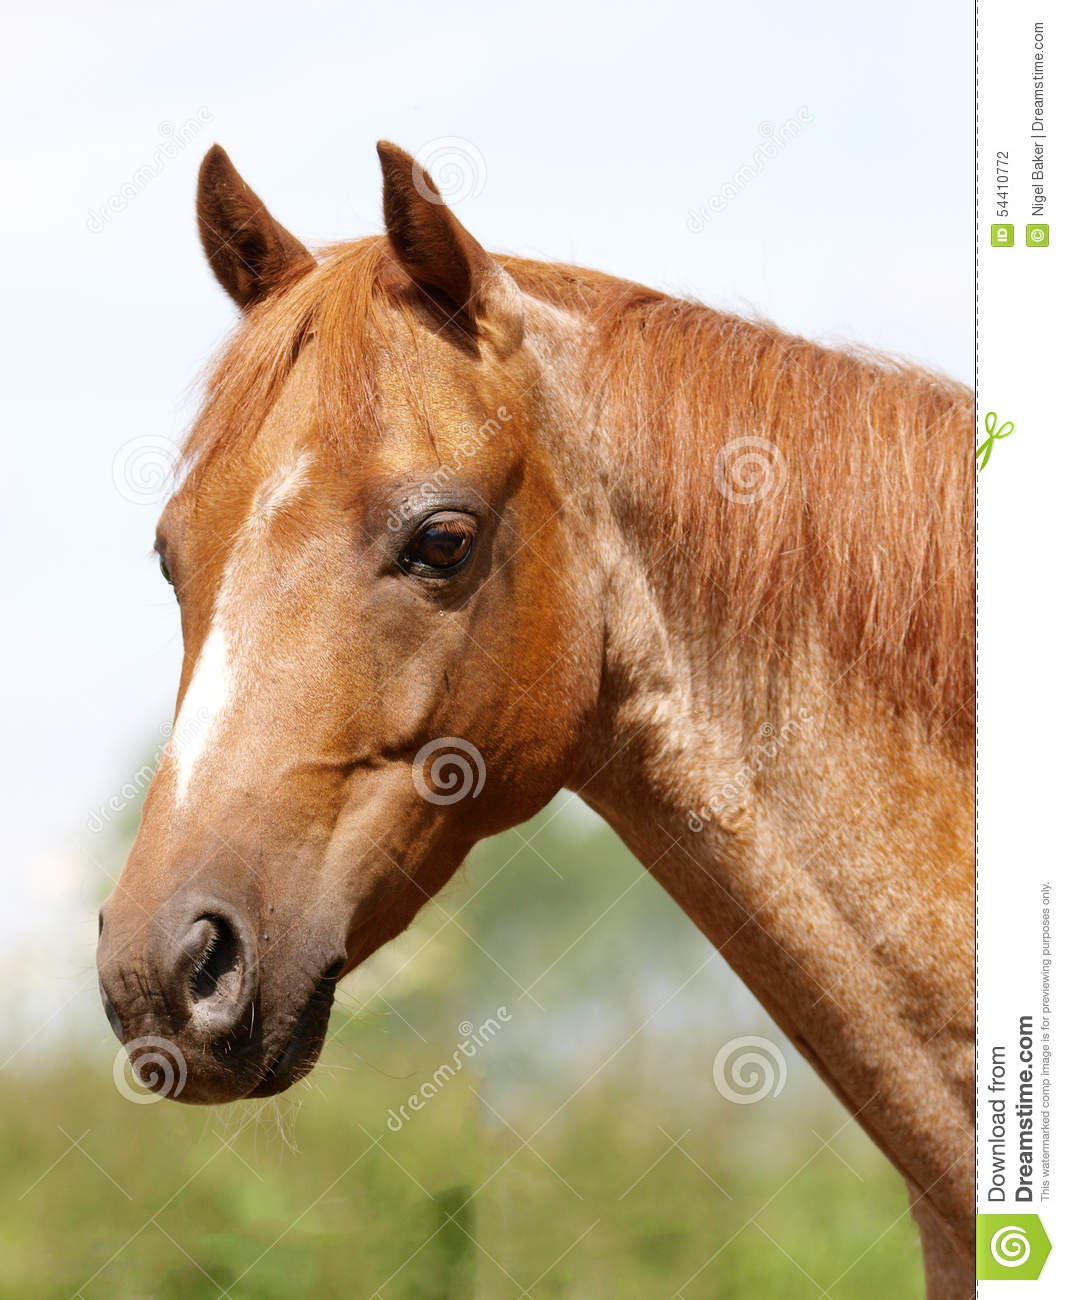 Horse Head Shot Stock Photo Image Of Pony Animal Ears 54410772